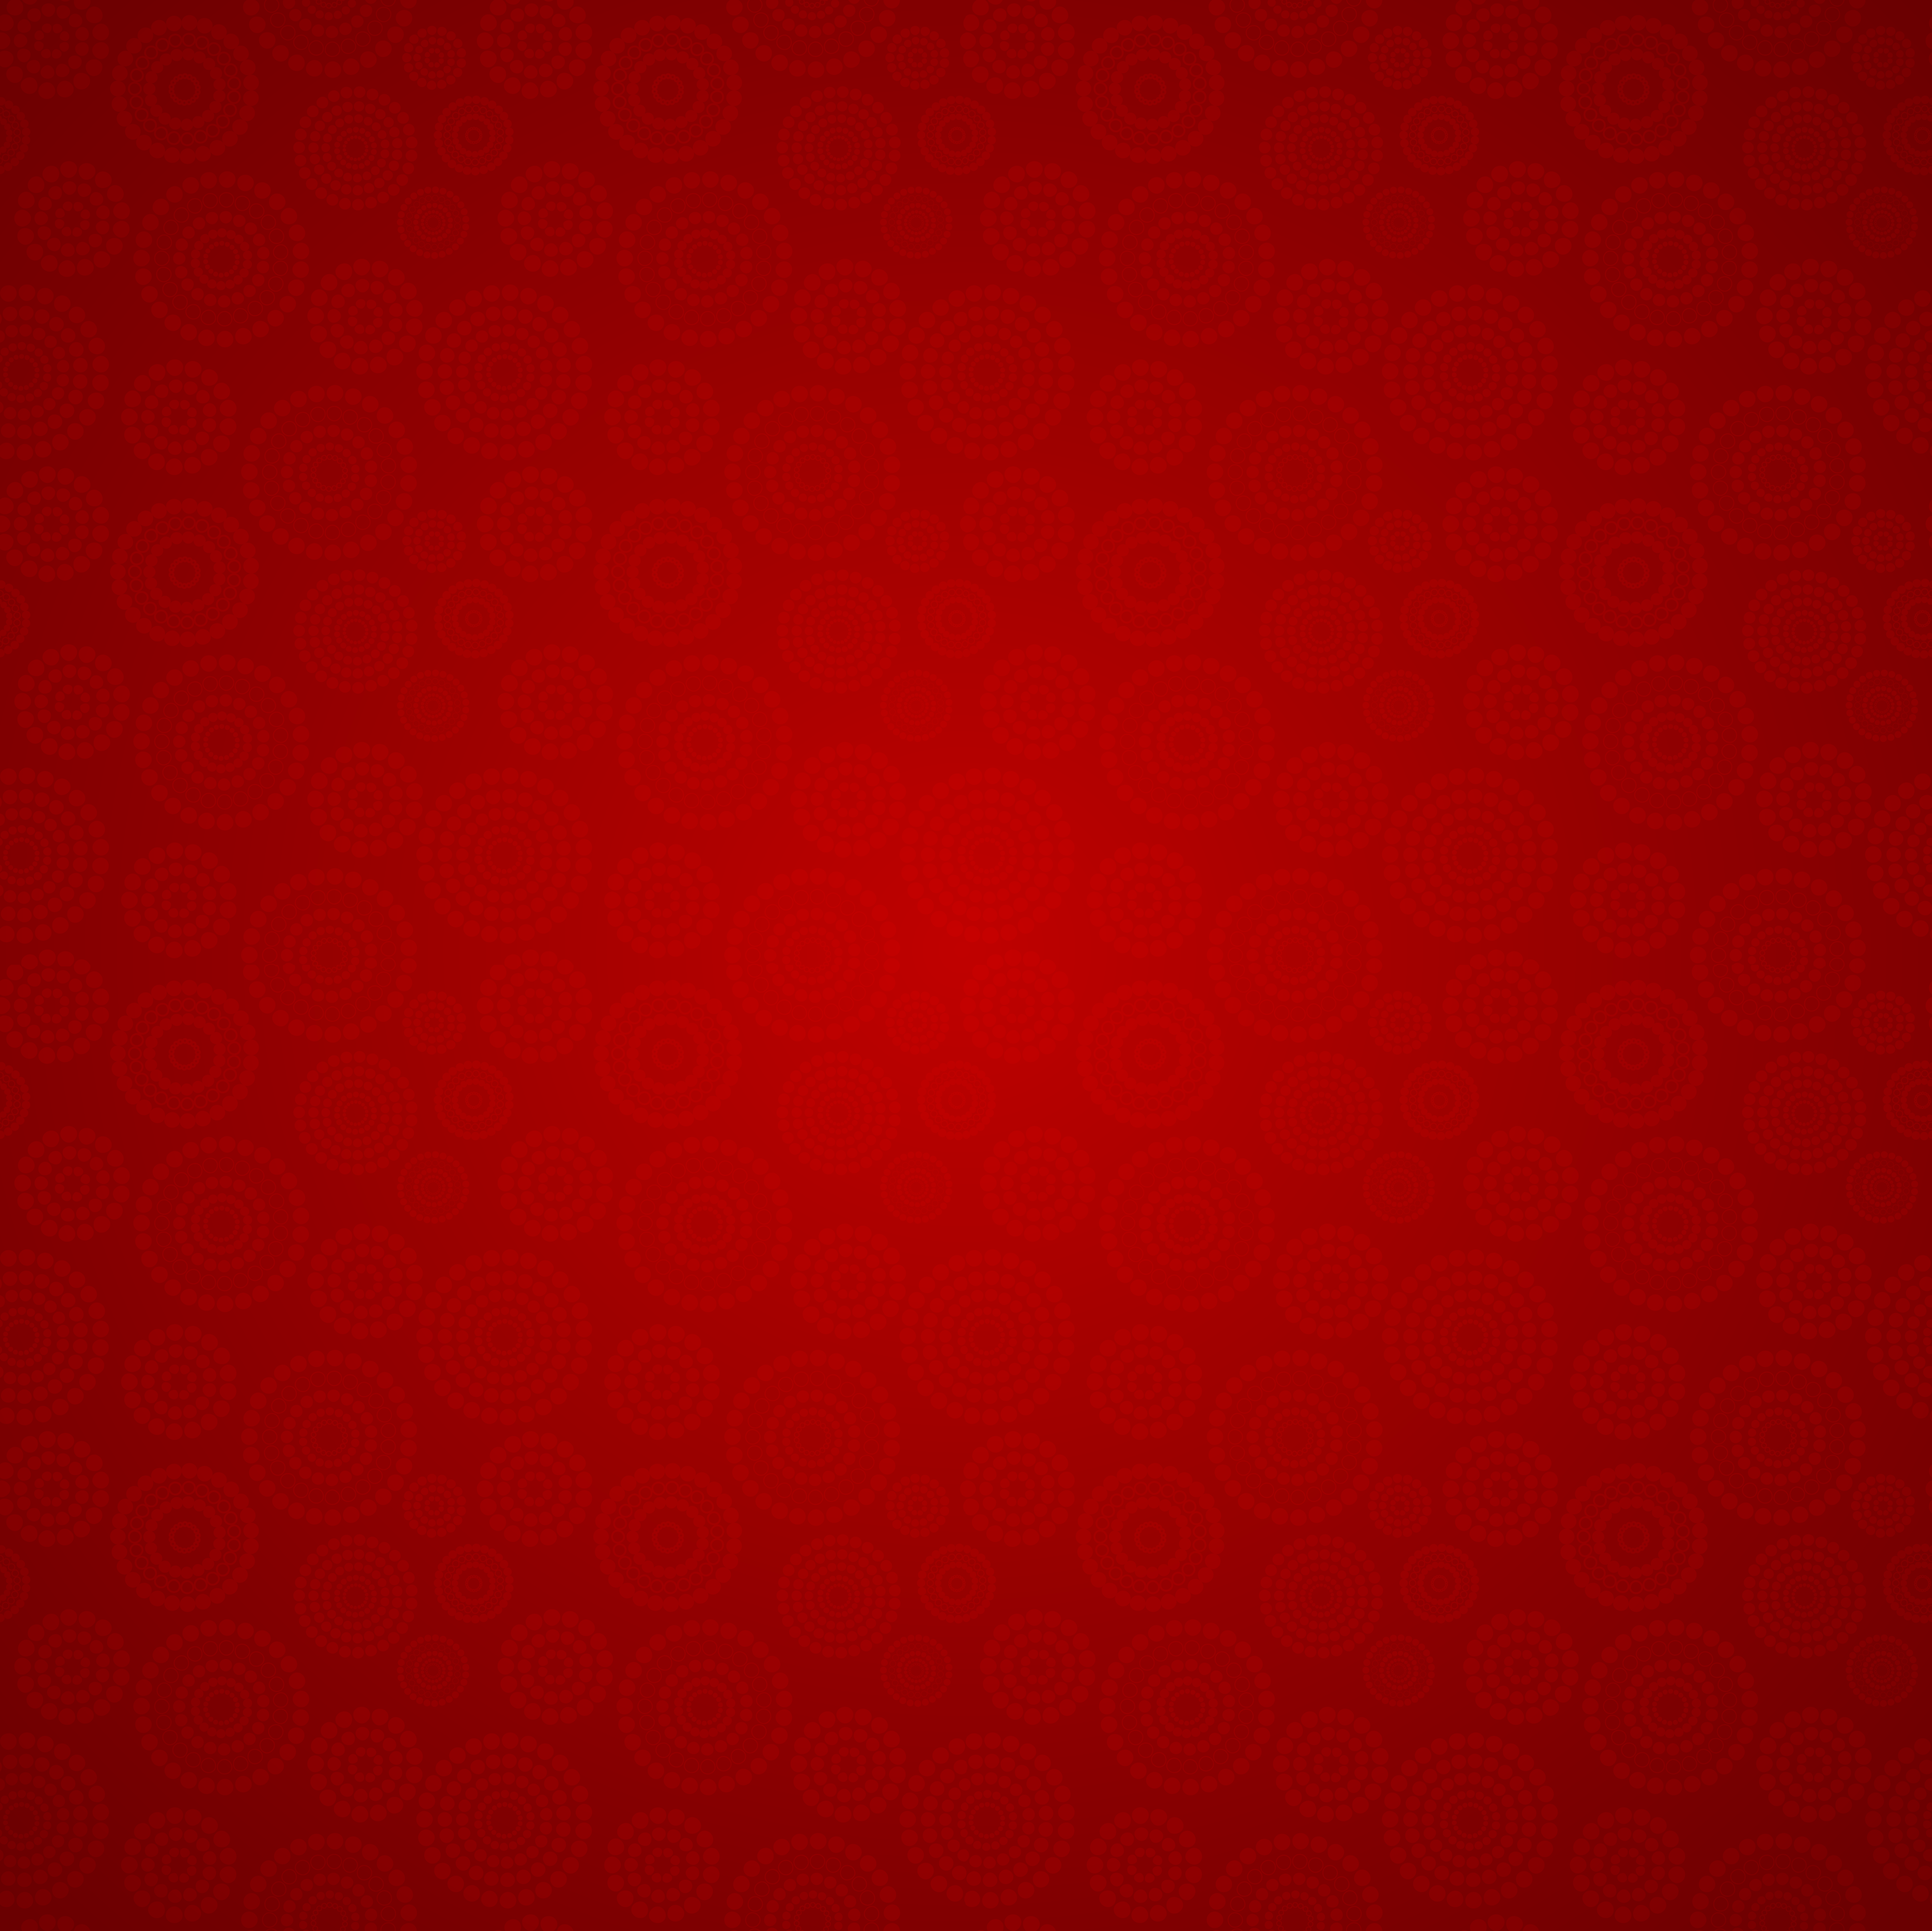 Red background clipart vector royalty free stock Ornamental Red Background | Gallery Yopriceville - High ... vector royalty free stock